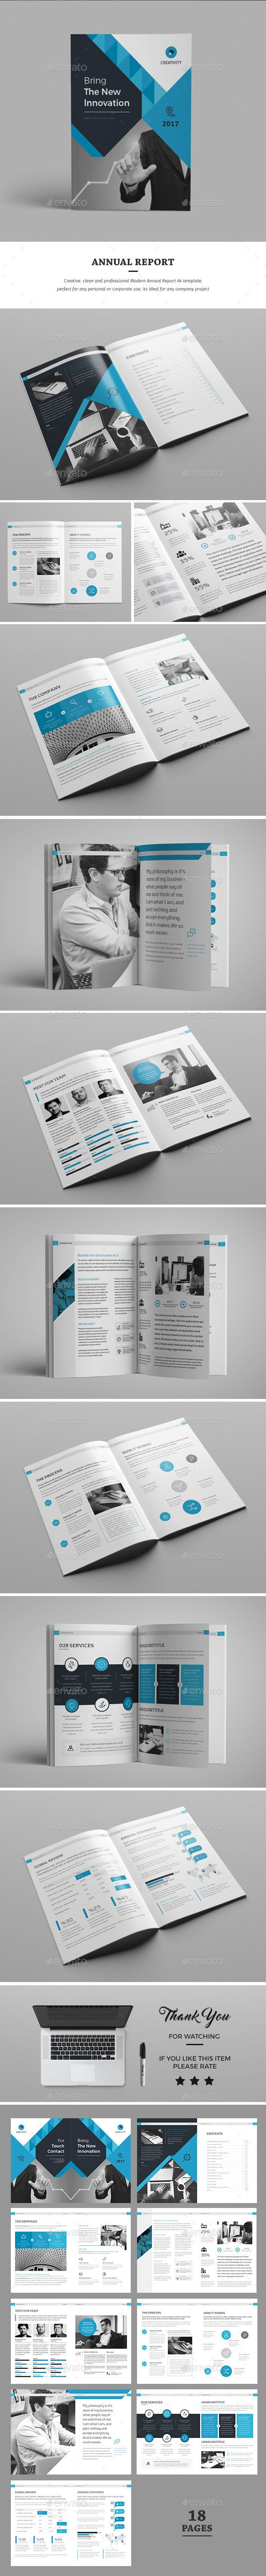 #Company Profile 2017 - Corporate #Brochures Download here:  https://graphicriver.net/item/company-profile-2017/19722382?ref=alena994